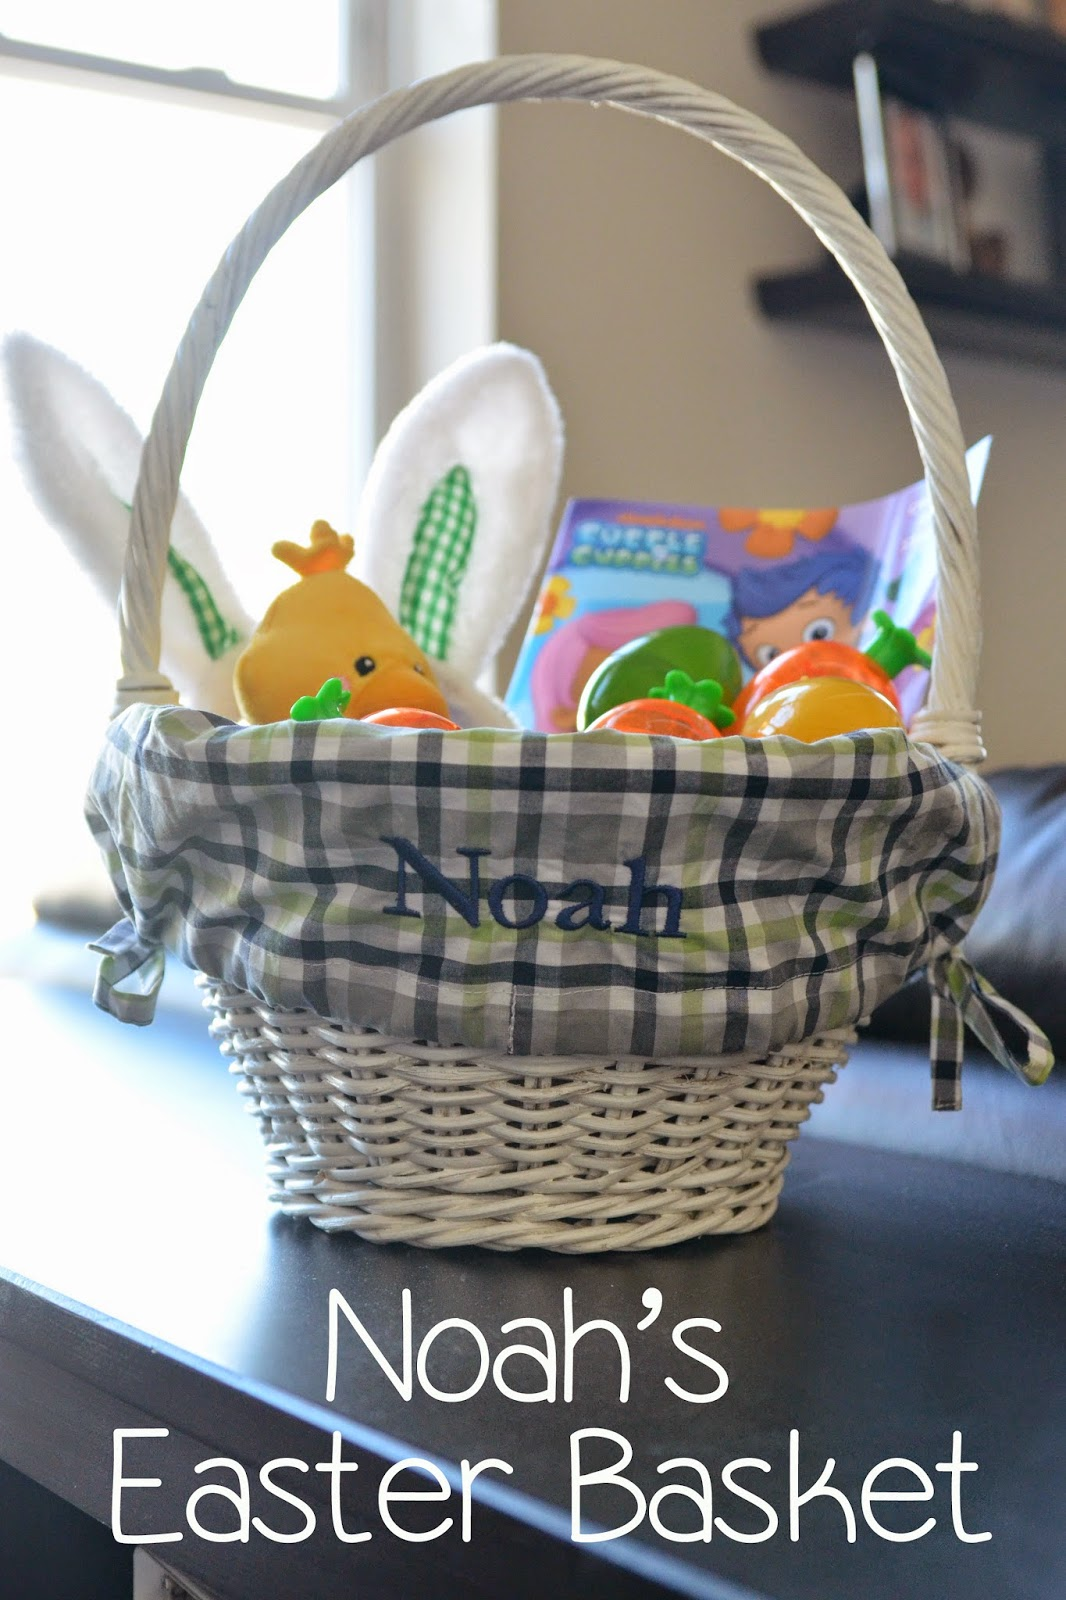 The adventure starts here noahs easter basket last year we celebrated noahs first easter both sets of grandparents got noah easter baskets filled with goodies since noah was only 4 12 months old negle Image collections